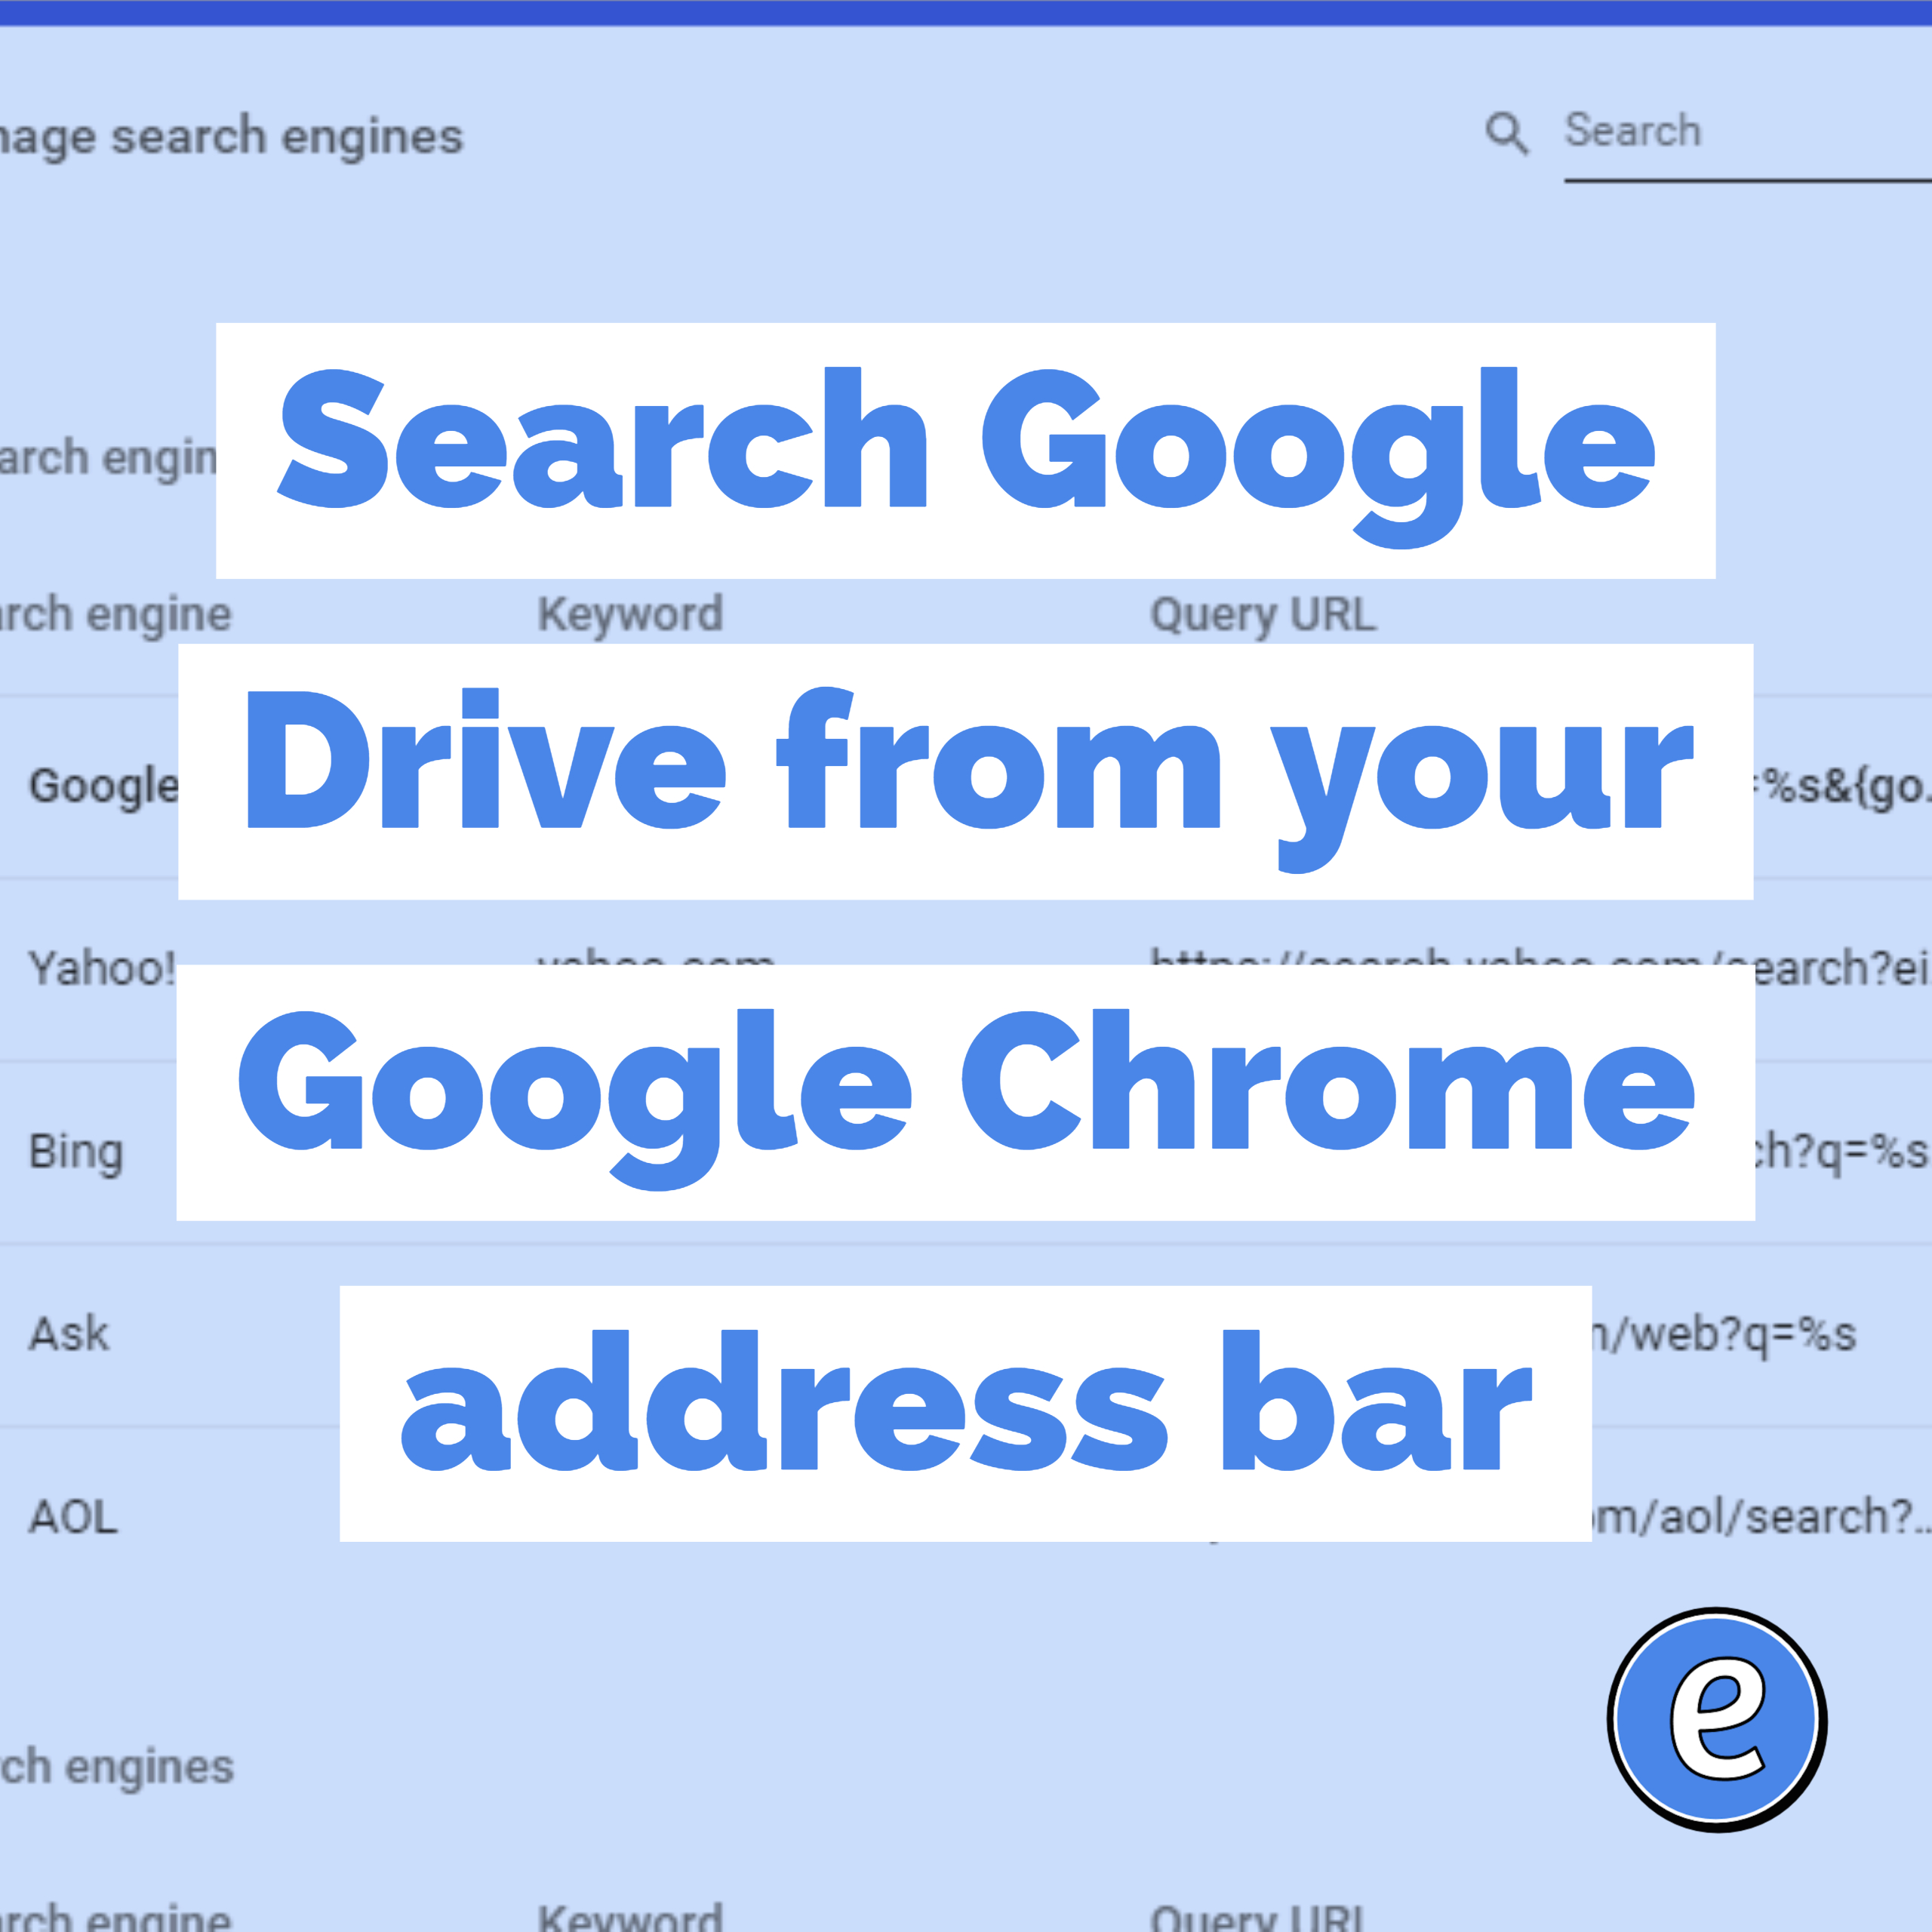 Search Google Drive from your Google Chrome address bar